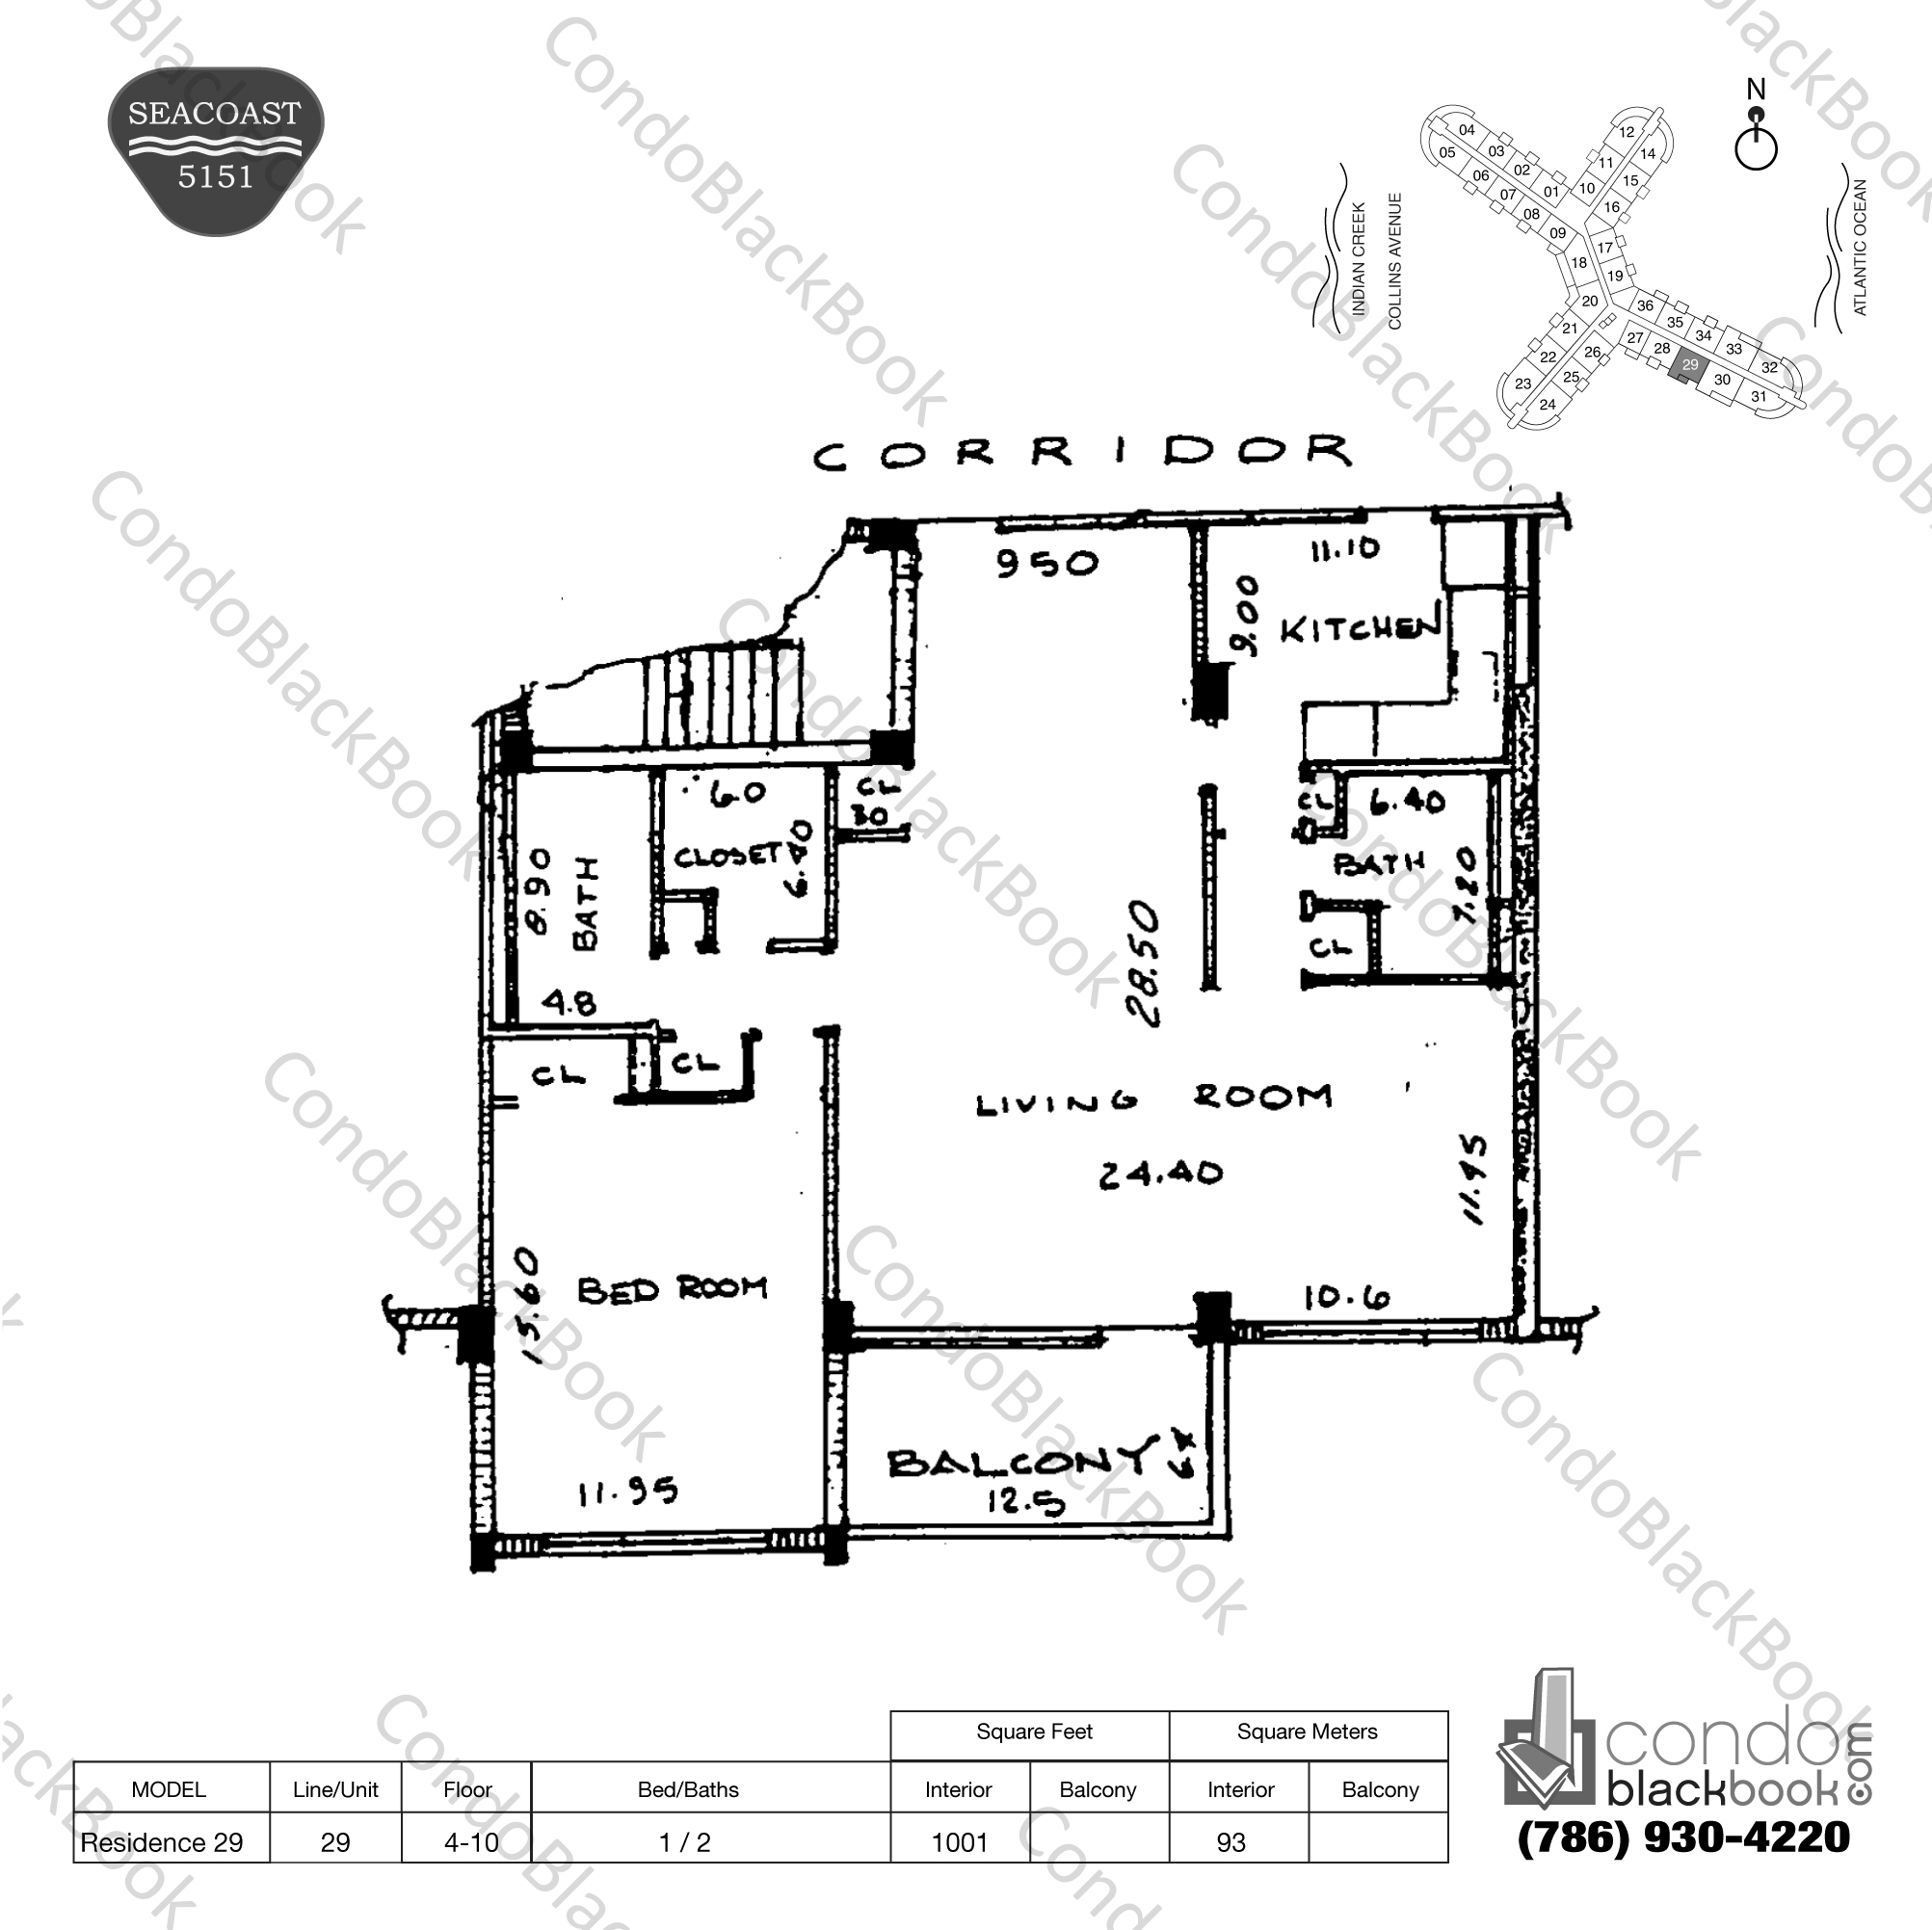 Floor plan for Seacoast 5151 Mid-Beach Miami Beach, model Residence 29, line 29, 1 / 2 bedrooms, 1001 sq ft